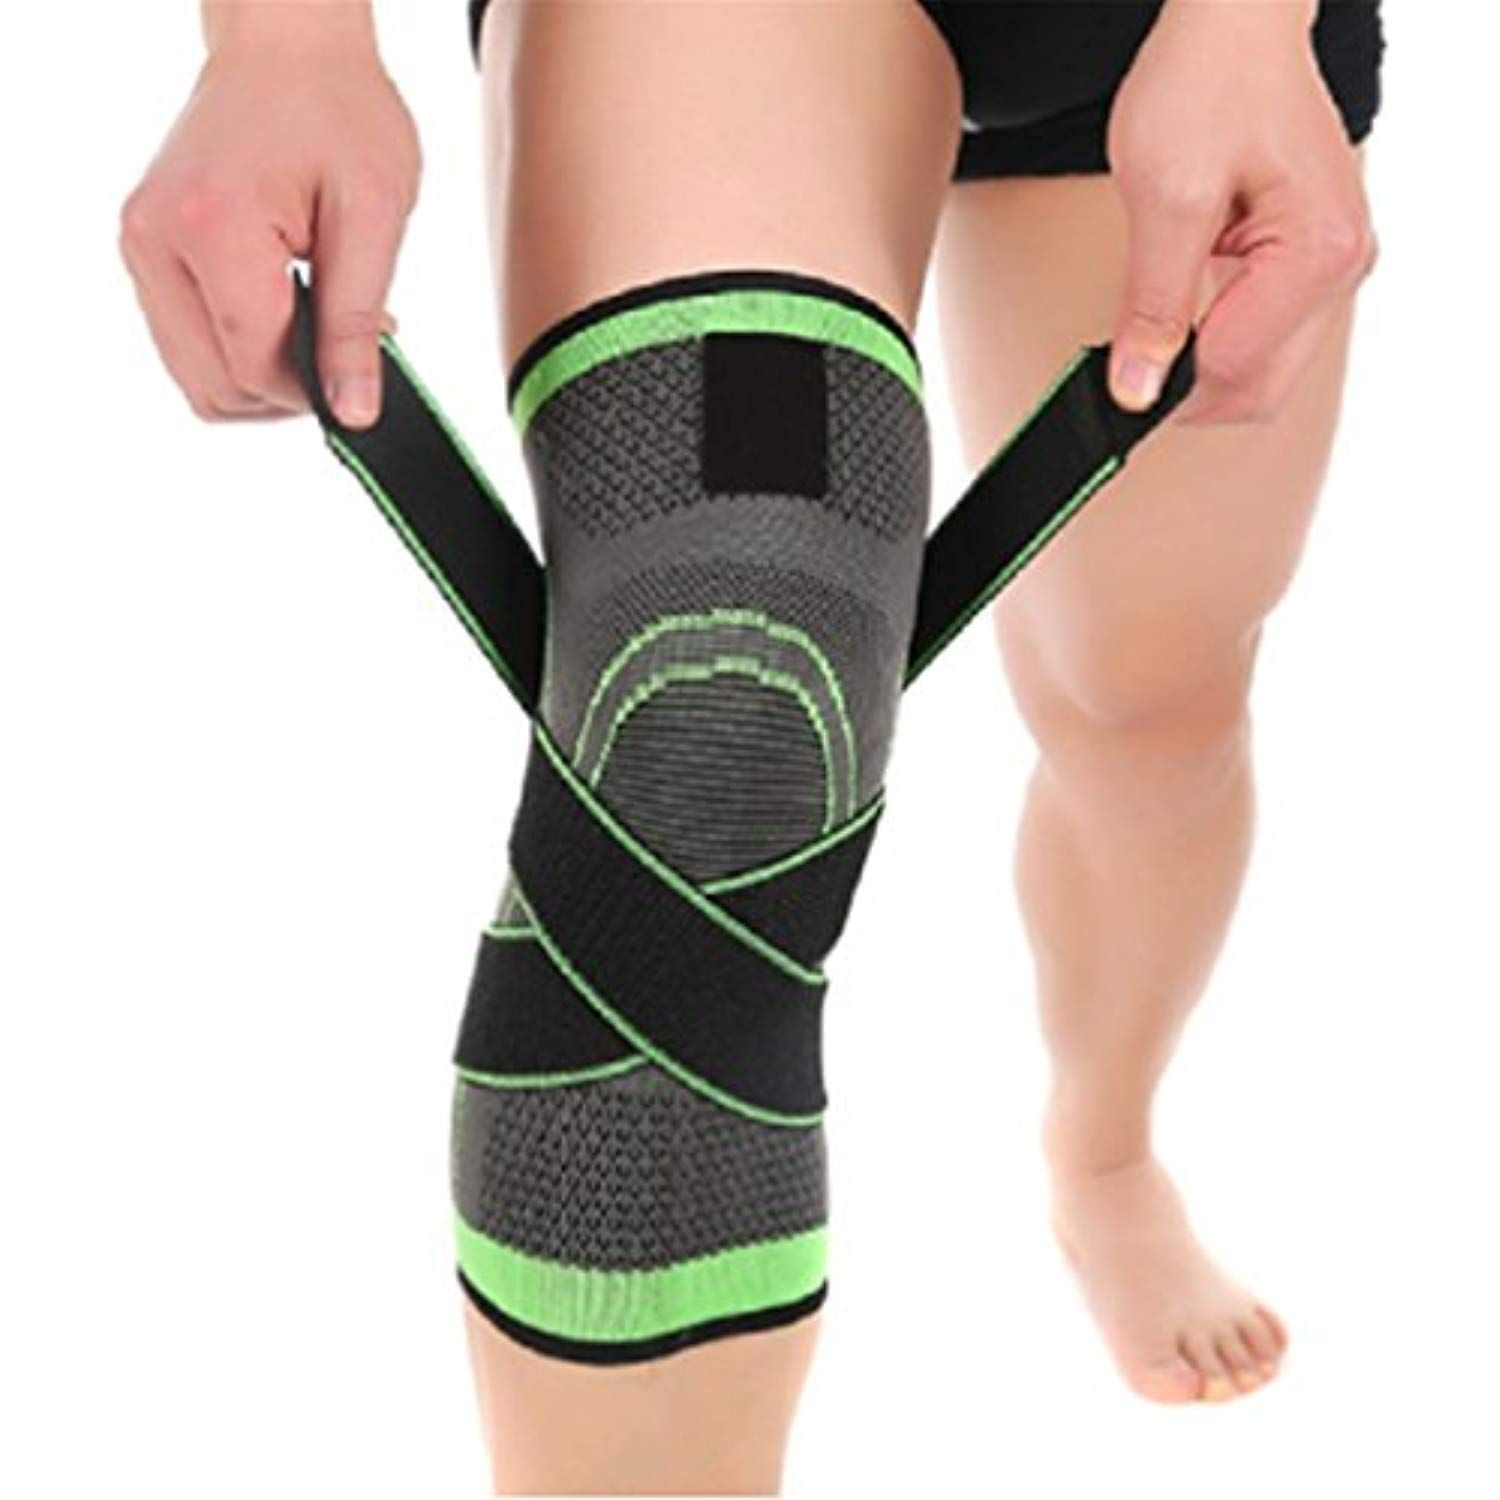 f31be529ec UNKE Ultimate Knee Compression Support Sleeve – Flexible Breathable Knee  Brace For Running, Sports #teamsports